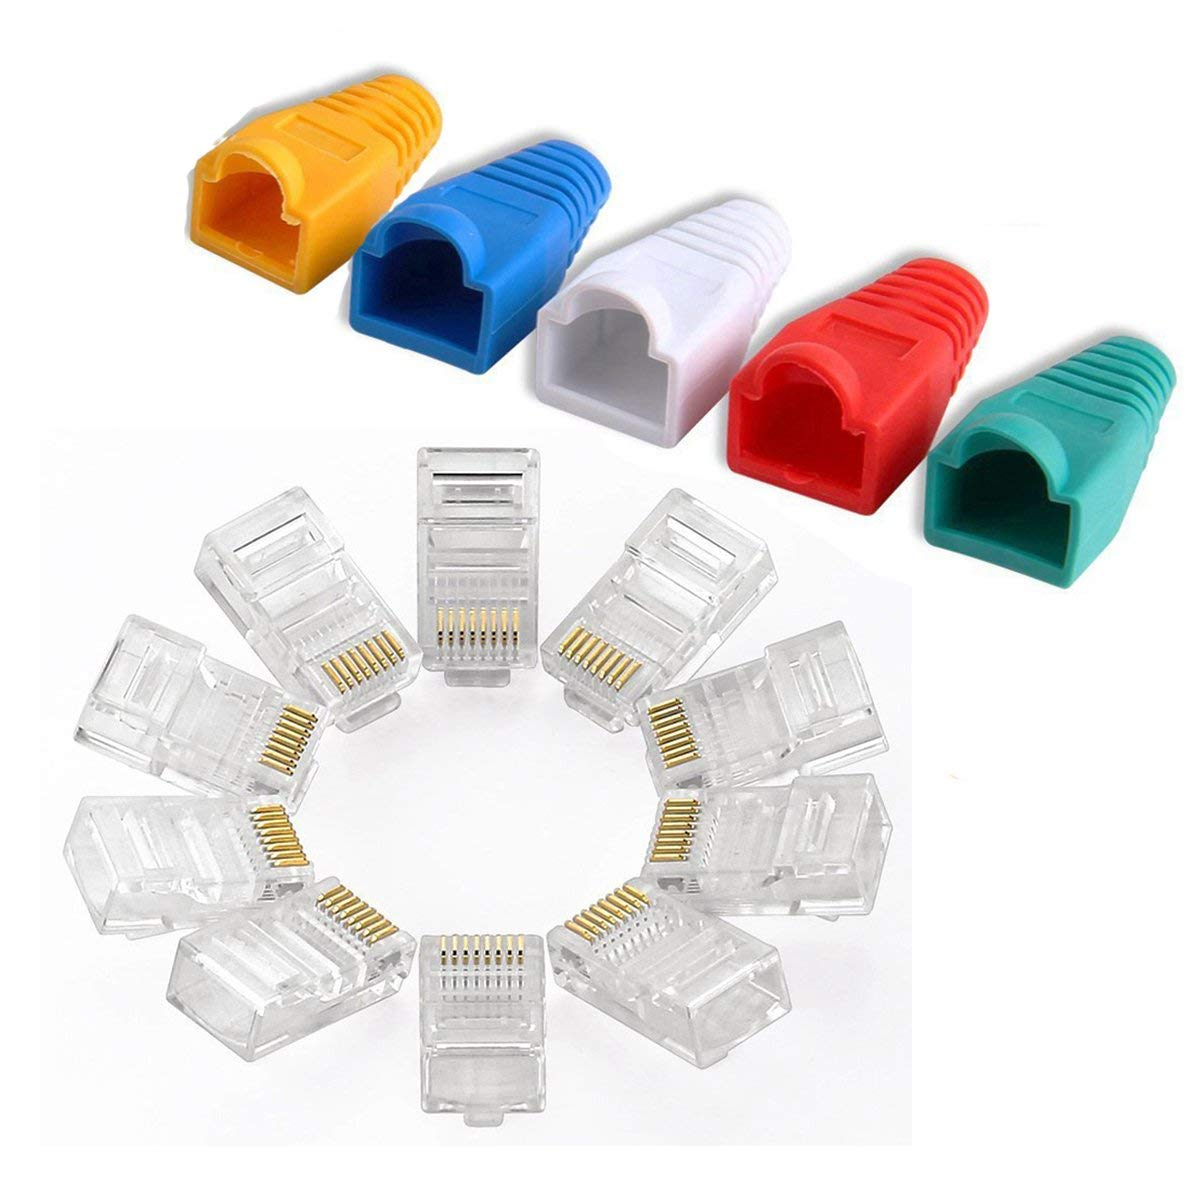 50 Pieces// Pack, Cat7 Swallow tail Fengyingzi RJ45 Connectors Cat5 Cat5e Cat6 Ethernet Cable Crimp Connectors Gold Plated Network Cable Modular Plug WD2895Q